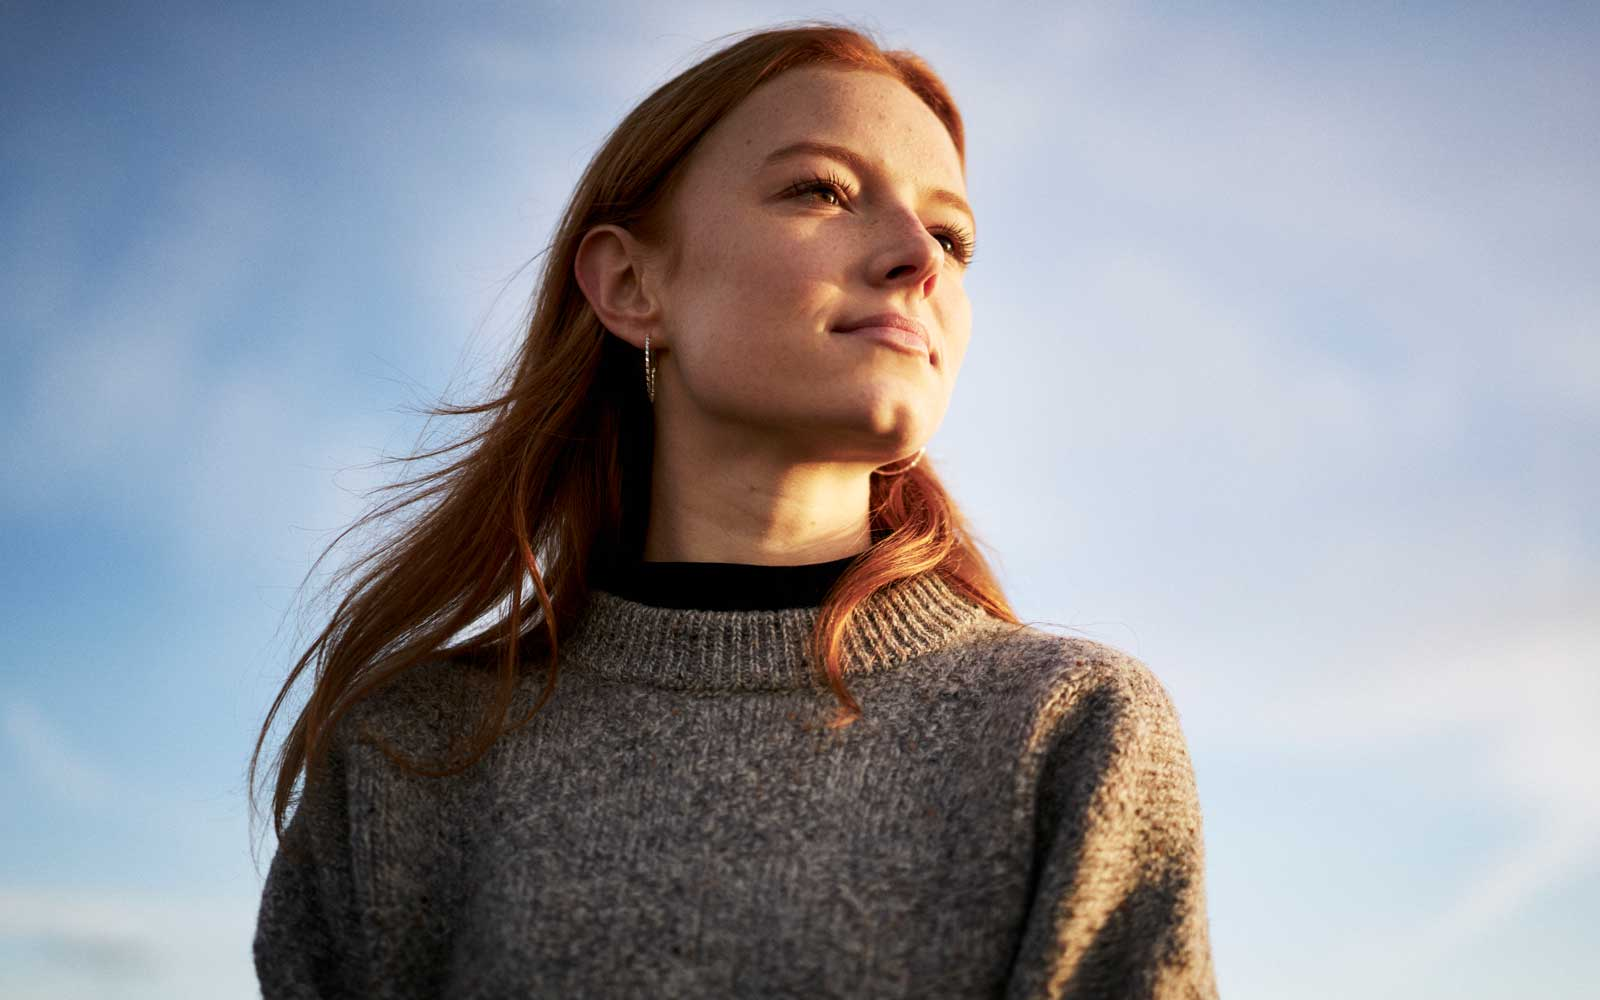 Woman standing in the sunlight in winter